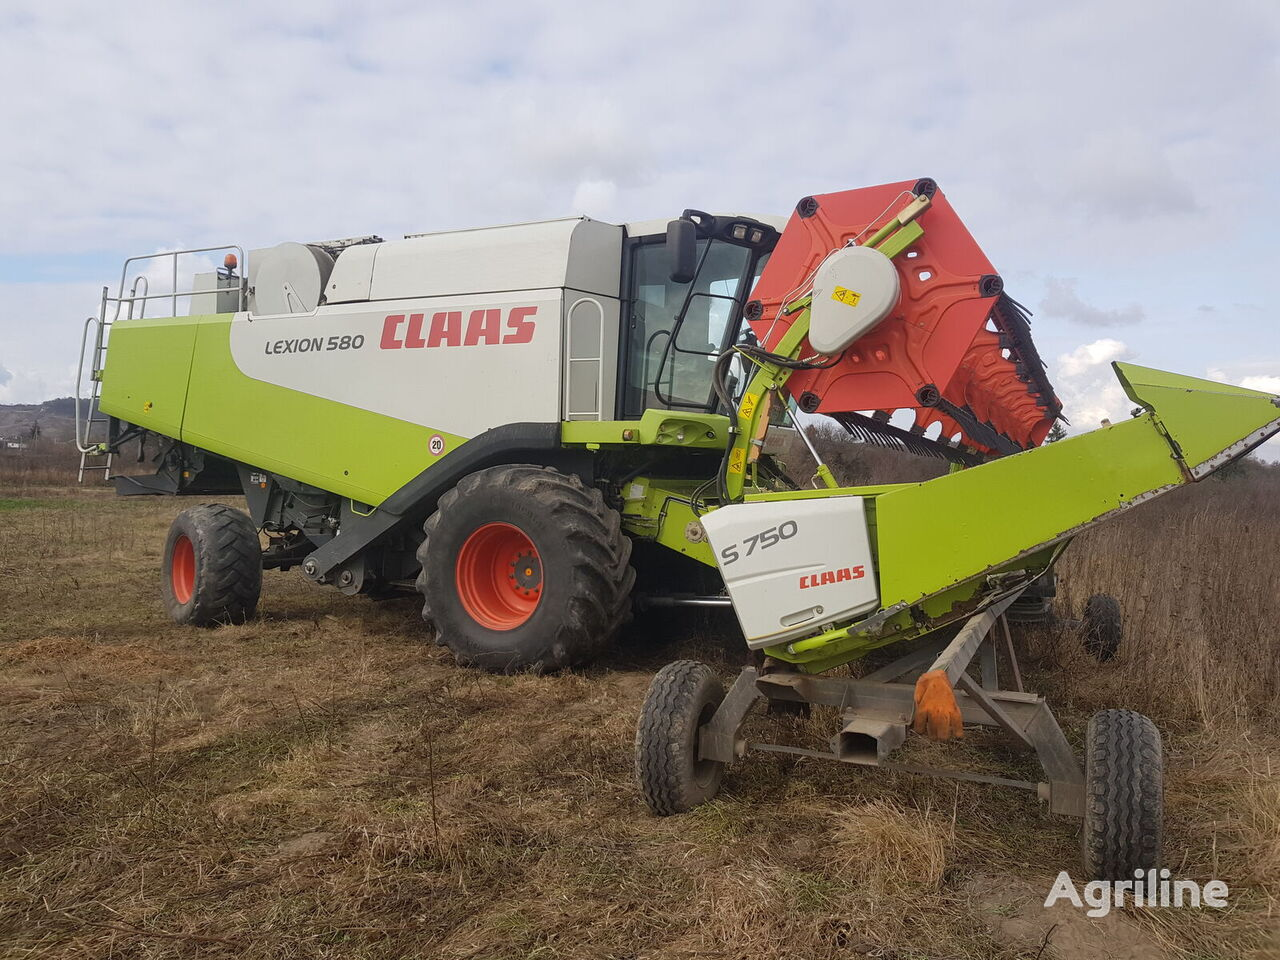 CLAAS S750 grain header